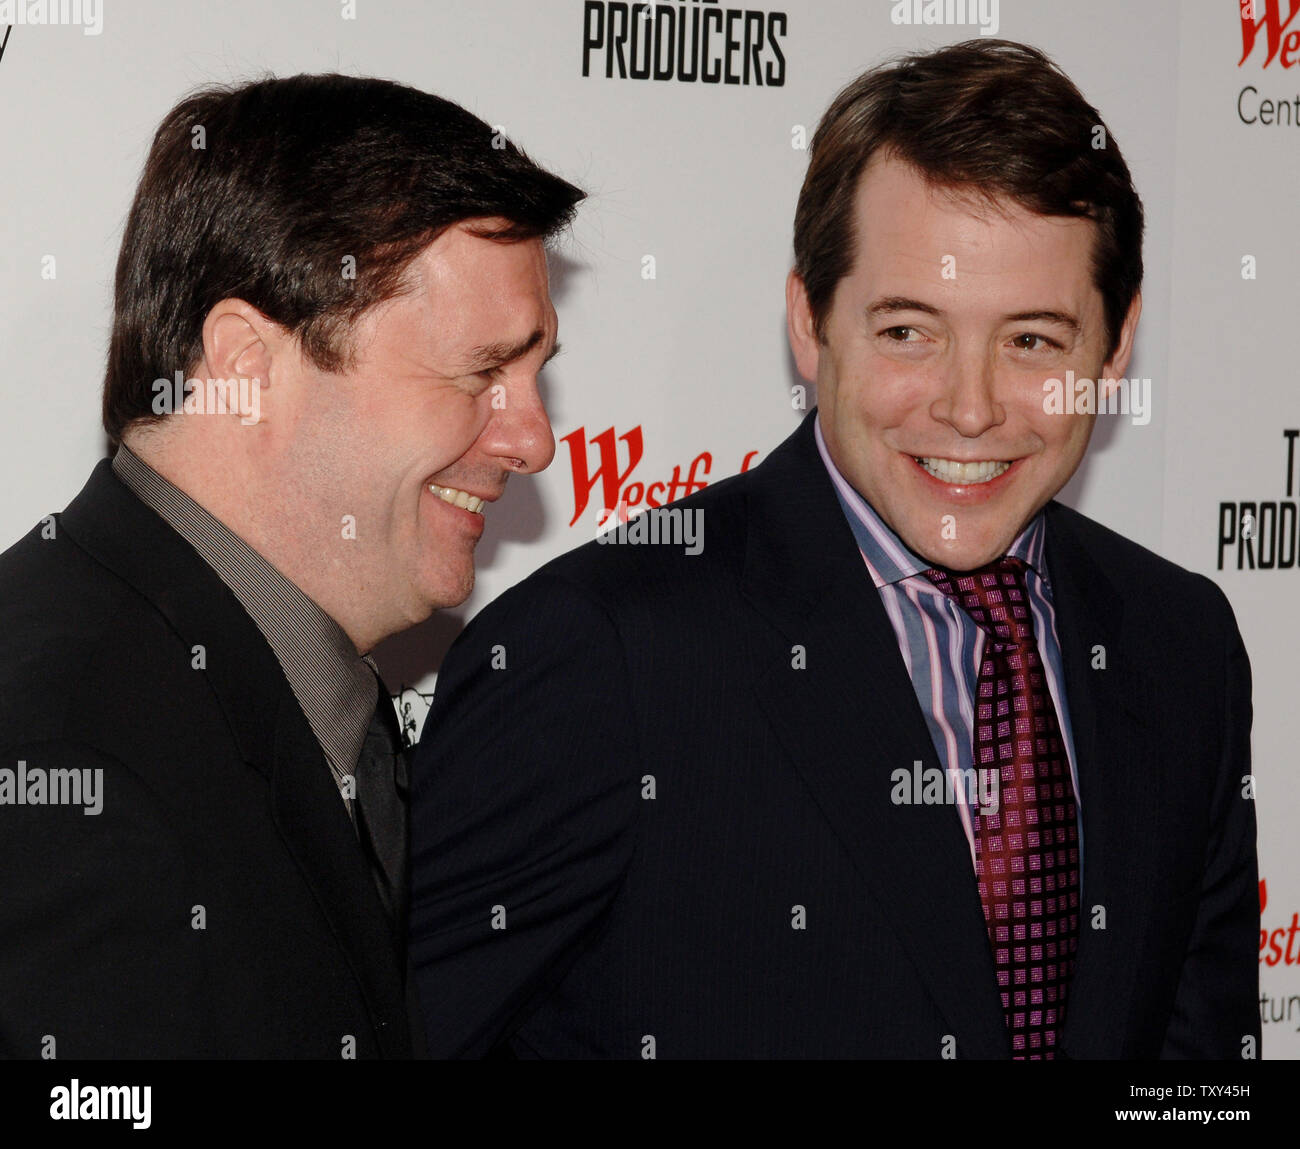 Actors Nathan Lane (L) and Matthew Broderick share a laugh